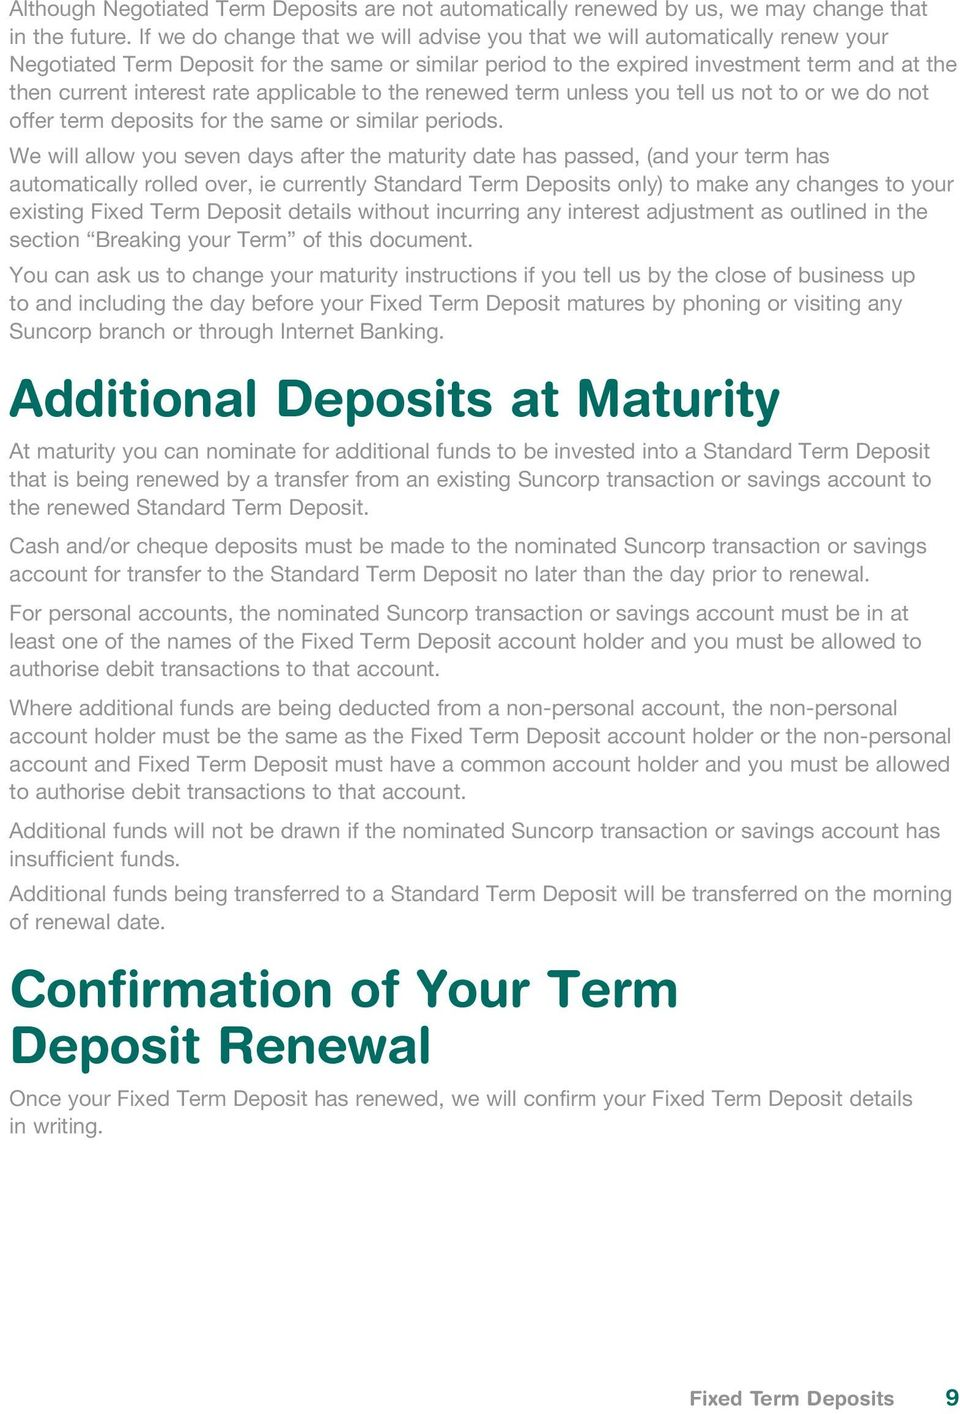 rate applicable to the renewed term unless you tell us not to or we do not offer term deposits for the same or similar periods.